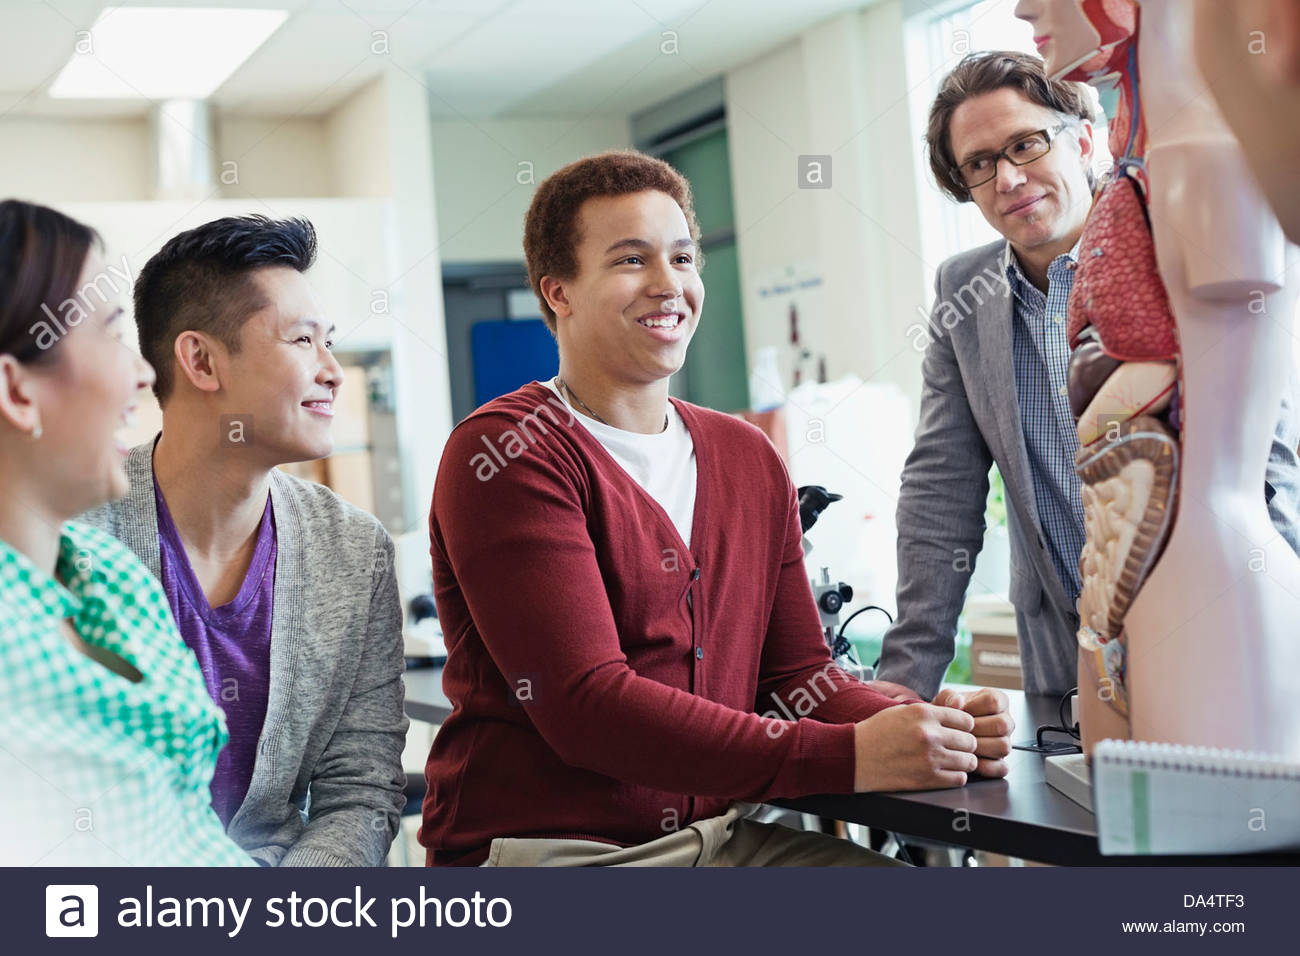 Male professor testing students about anatomy in science lab - Stock Image